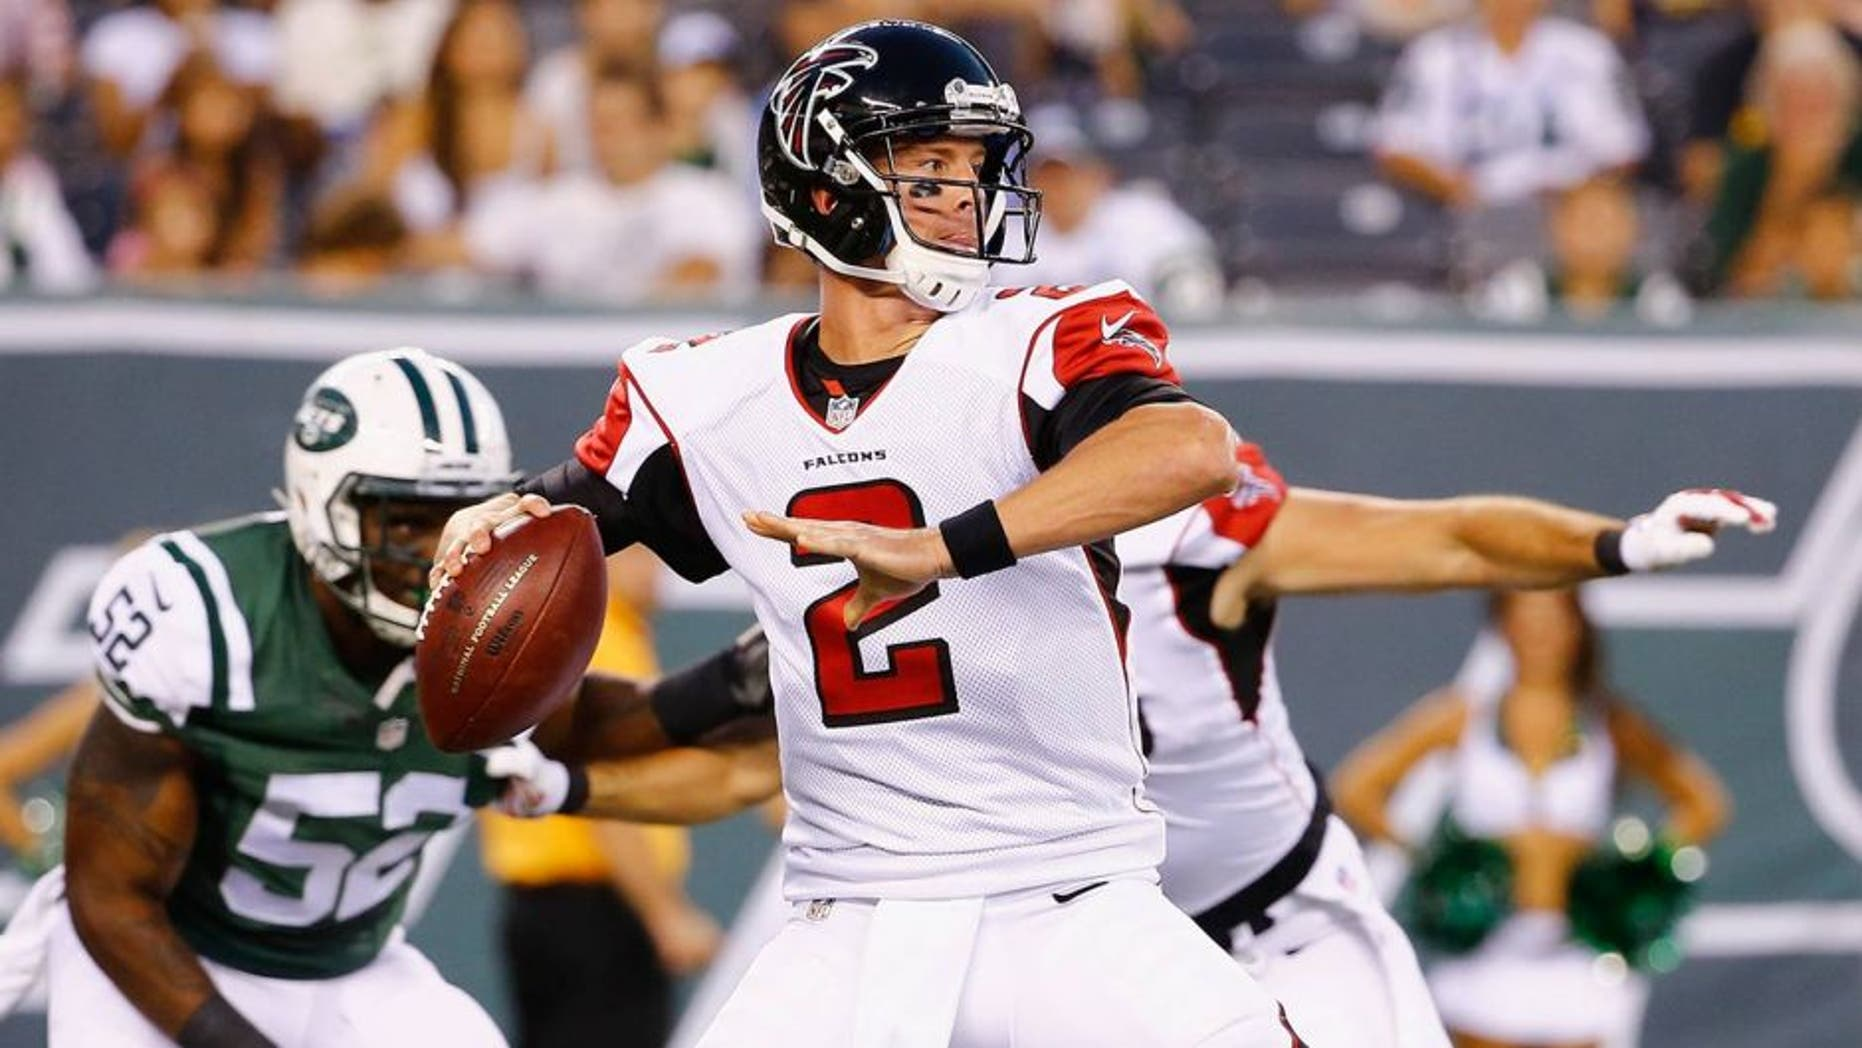 EAST RUTHERFORD, NJ - AUGUST 21: Matt Ryan #2 of the Atlanta Falcons passes against the New York Jets during their pre season game at MetLife Stadium on August 21, 2015 in East Rutherford, New Jersey. (Photo by Al Bello/Getty Images)